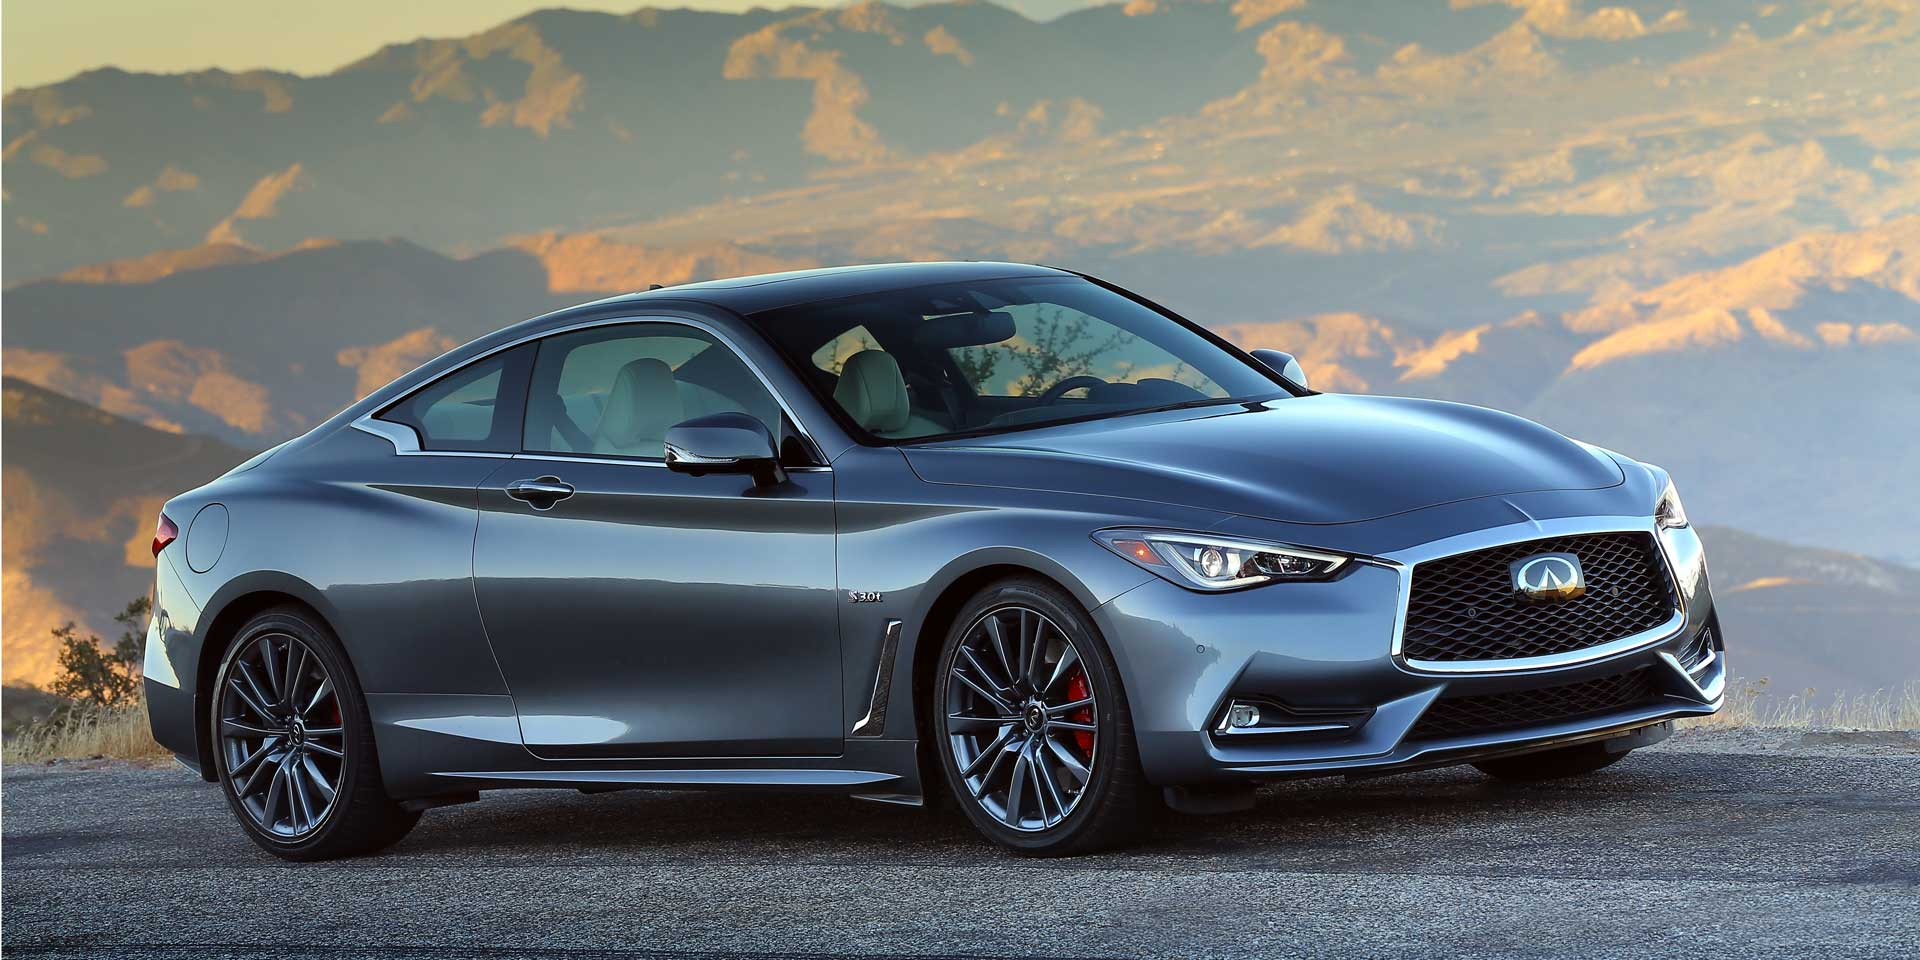 2017 Infiniti Q60: The 2017 Infiniti Q60 Is A Two Door Sports Coupe That  Seats Four Passengers. This All New Sports Coupe Will Compete Against  Vehicles Like ...